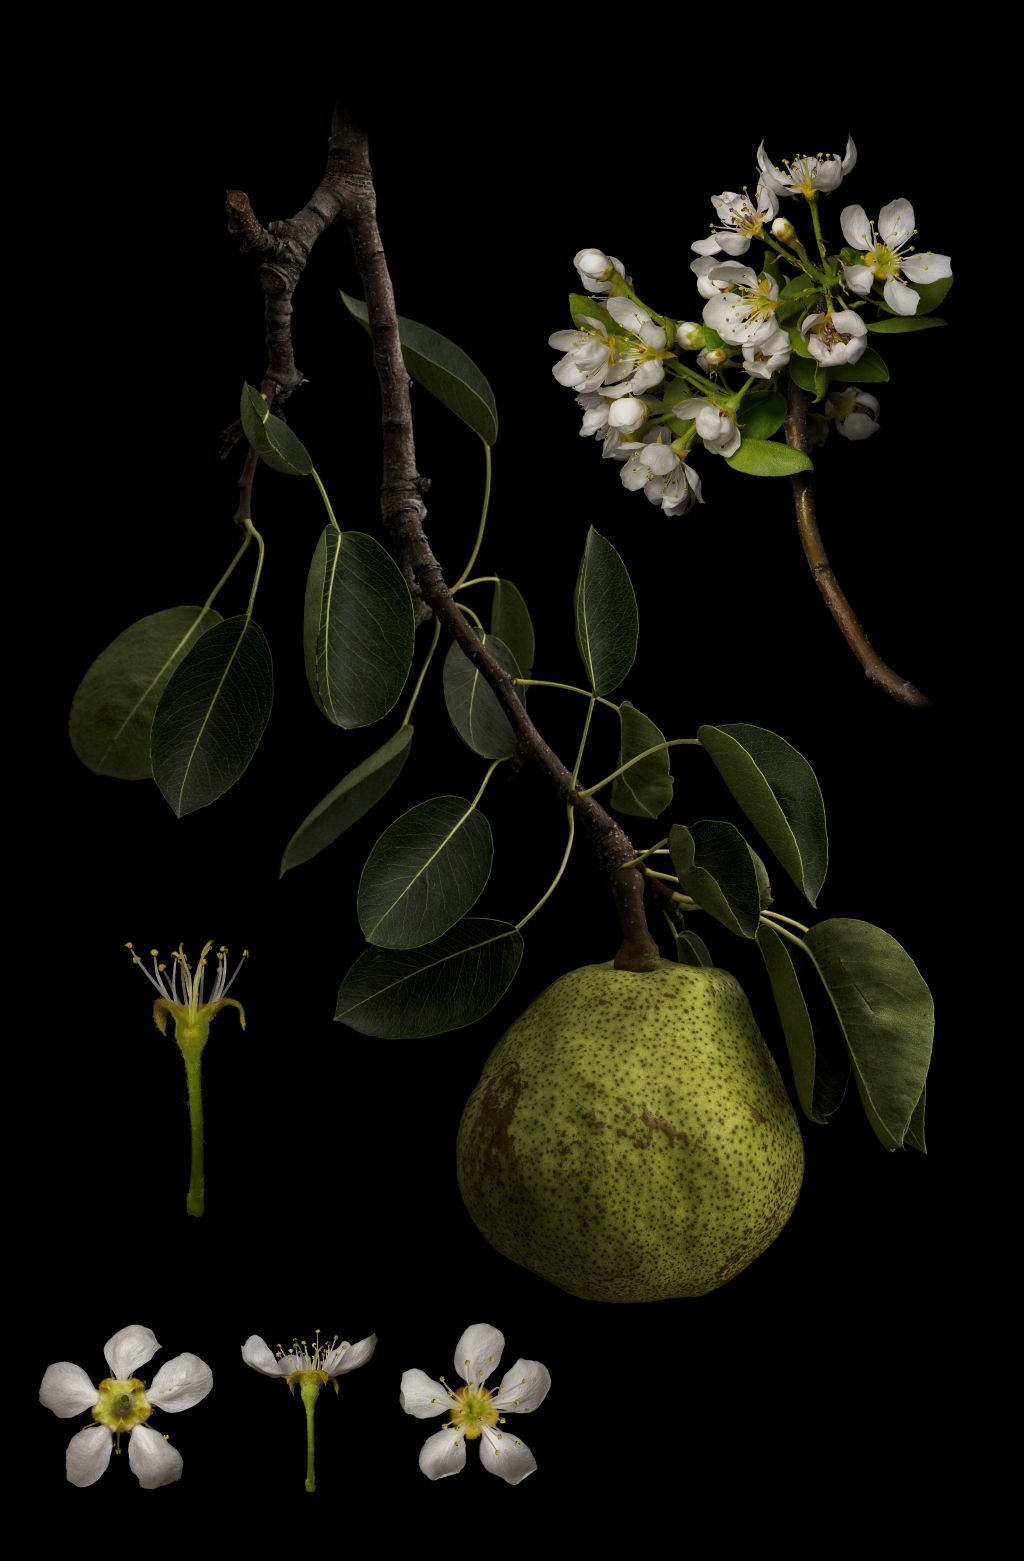 still life sony world photography award by masumi